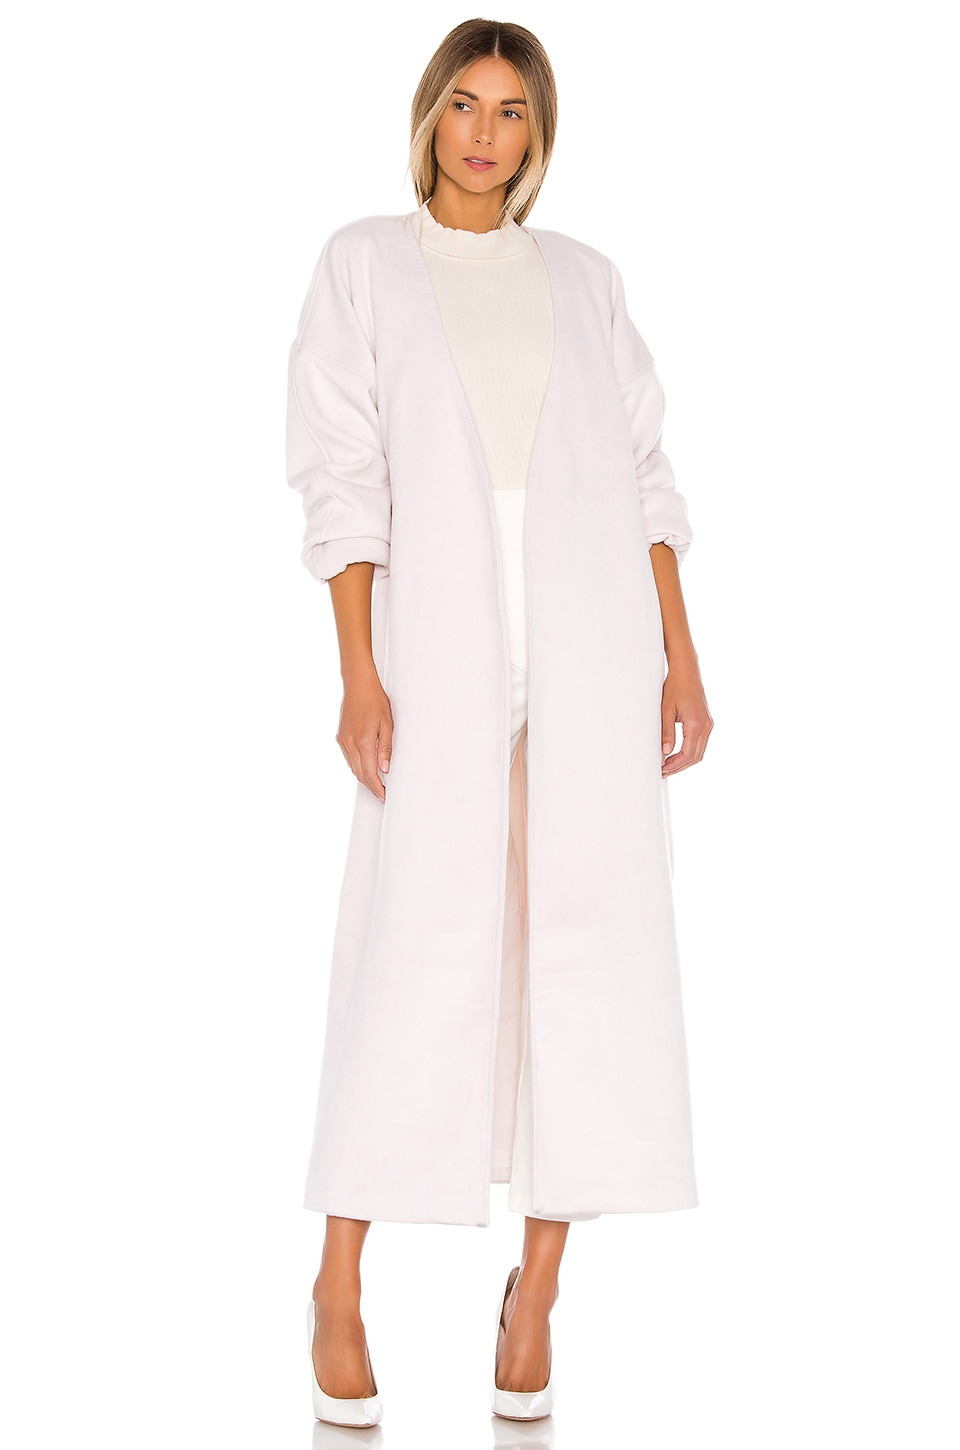 L'Academie The Robertina Coat in Seashell White